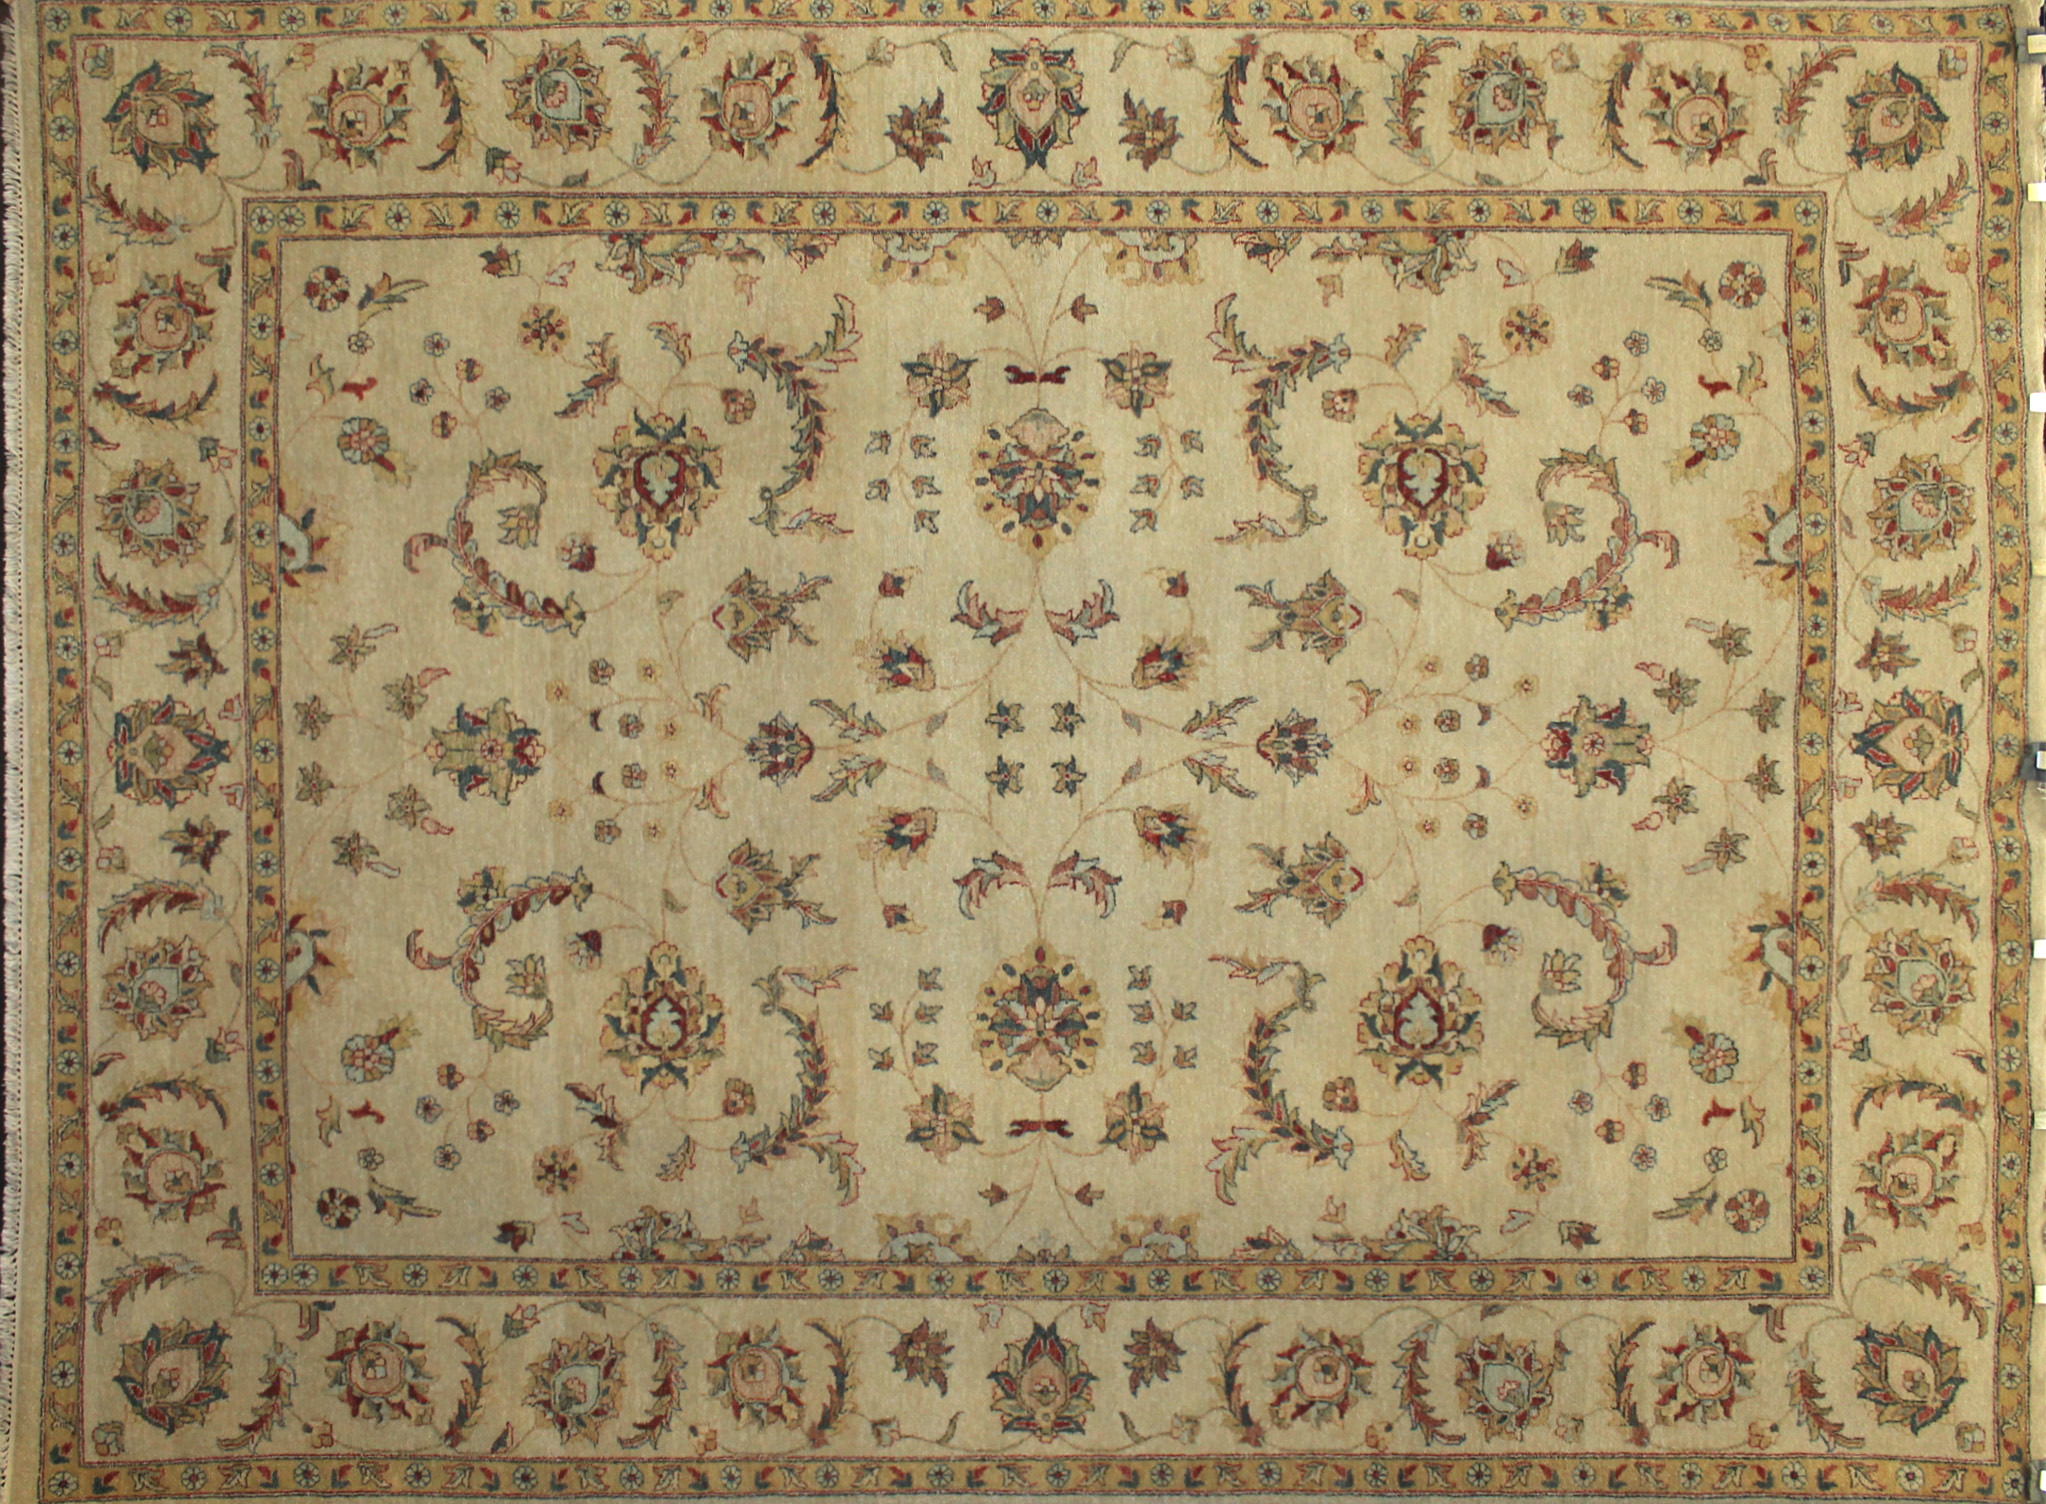 9x12 Traditional Hand Knotted Wool Area Rug - MR3419